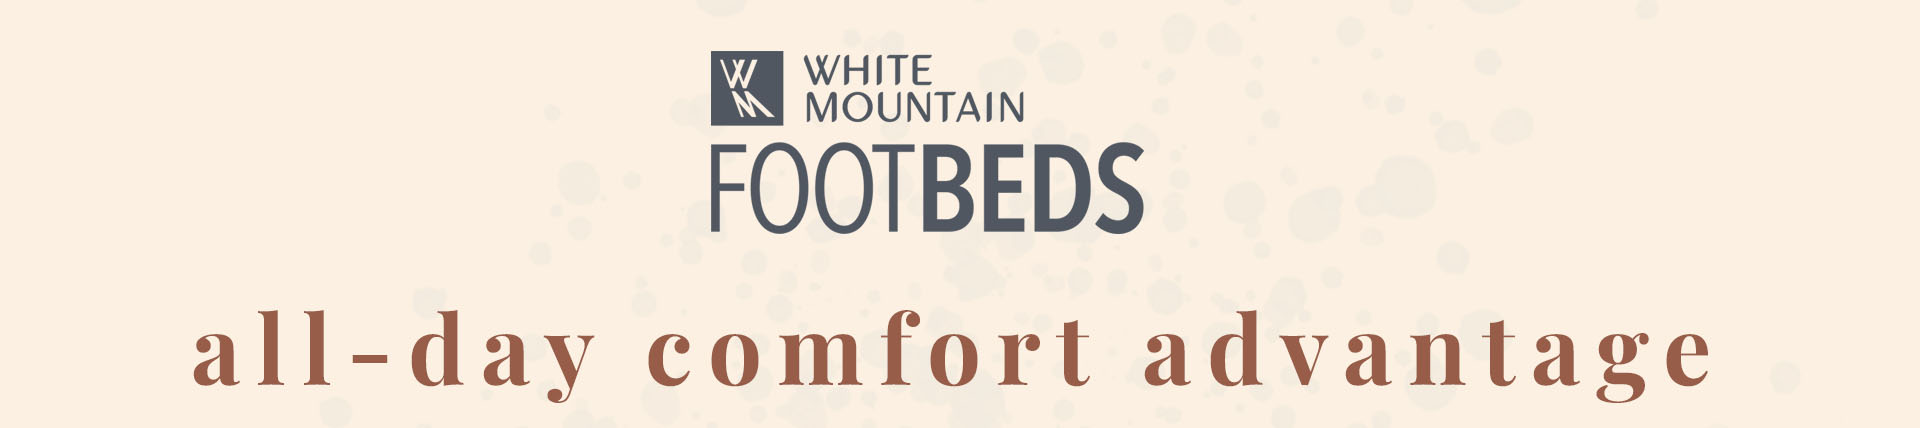 White Mountain FOOTBEDS - All Day Comfort Advantage